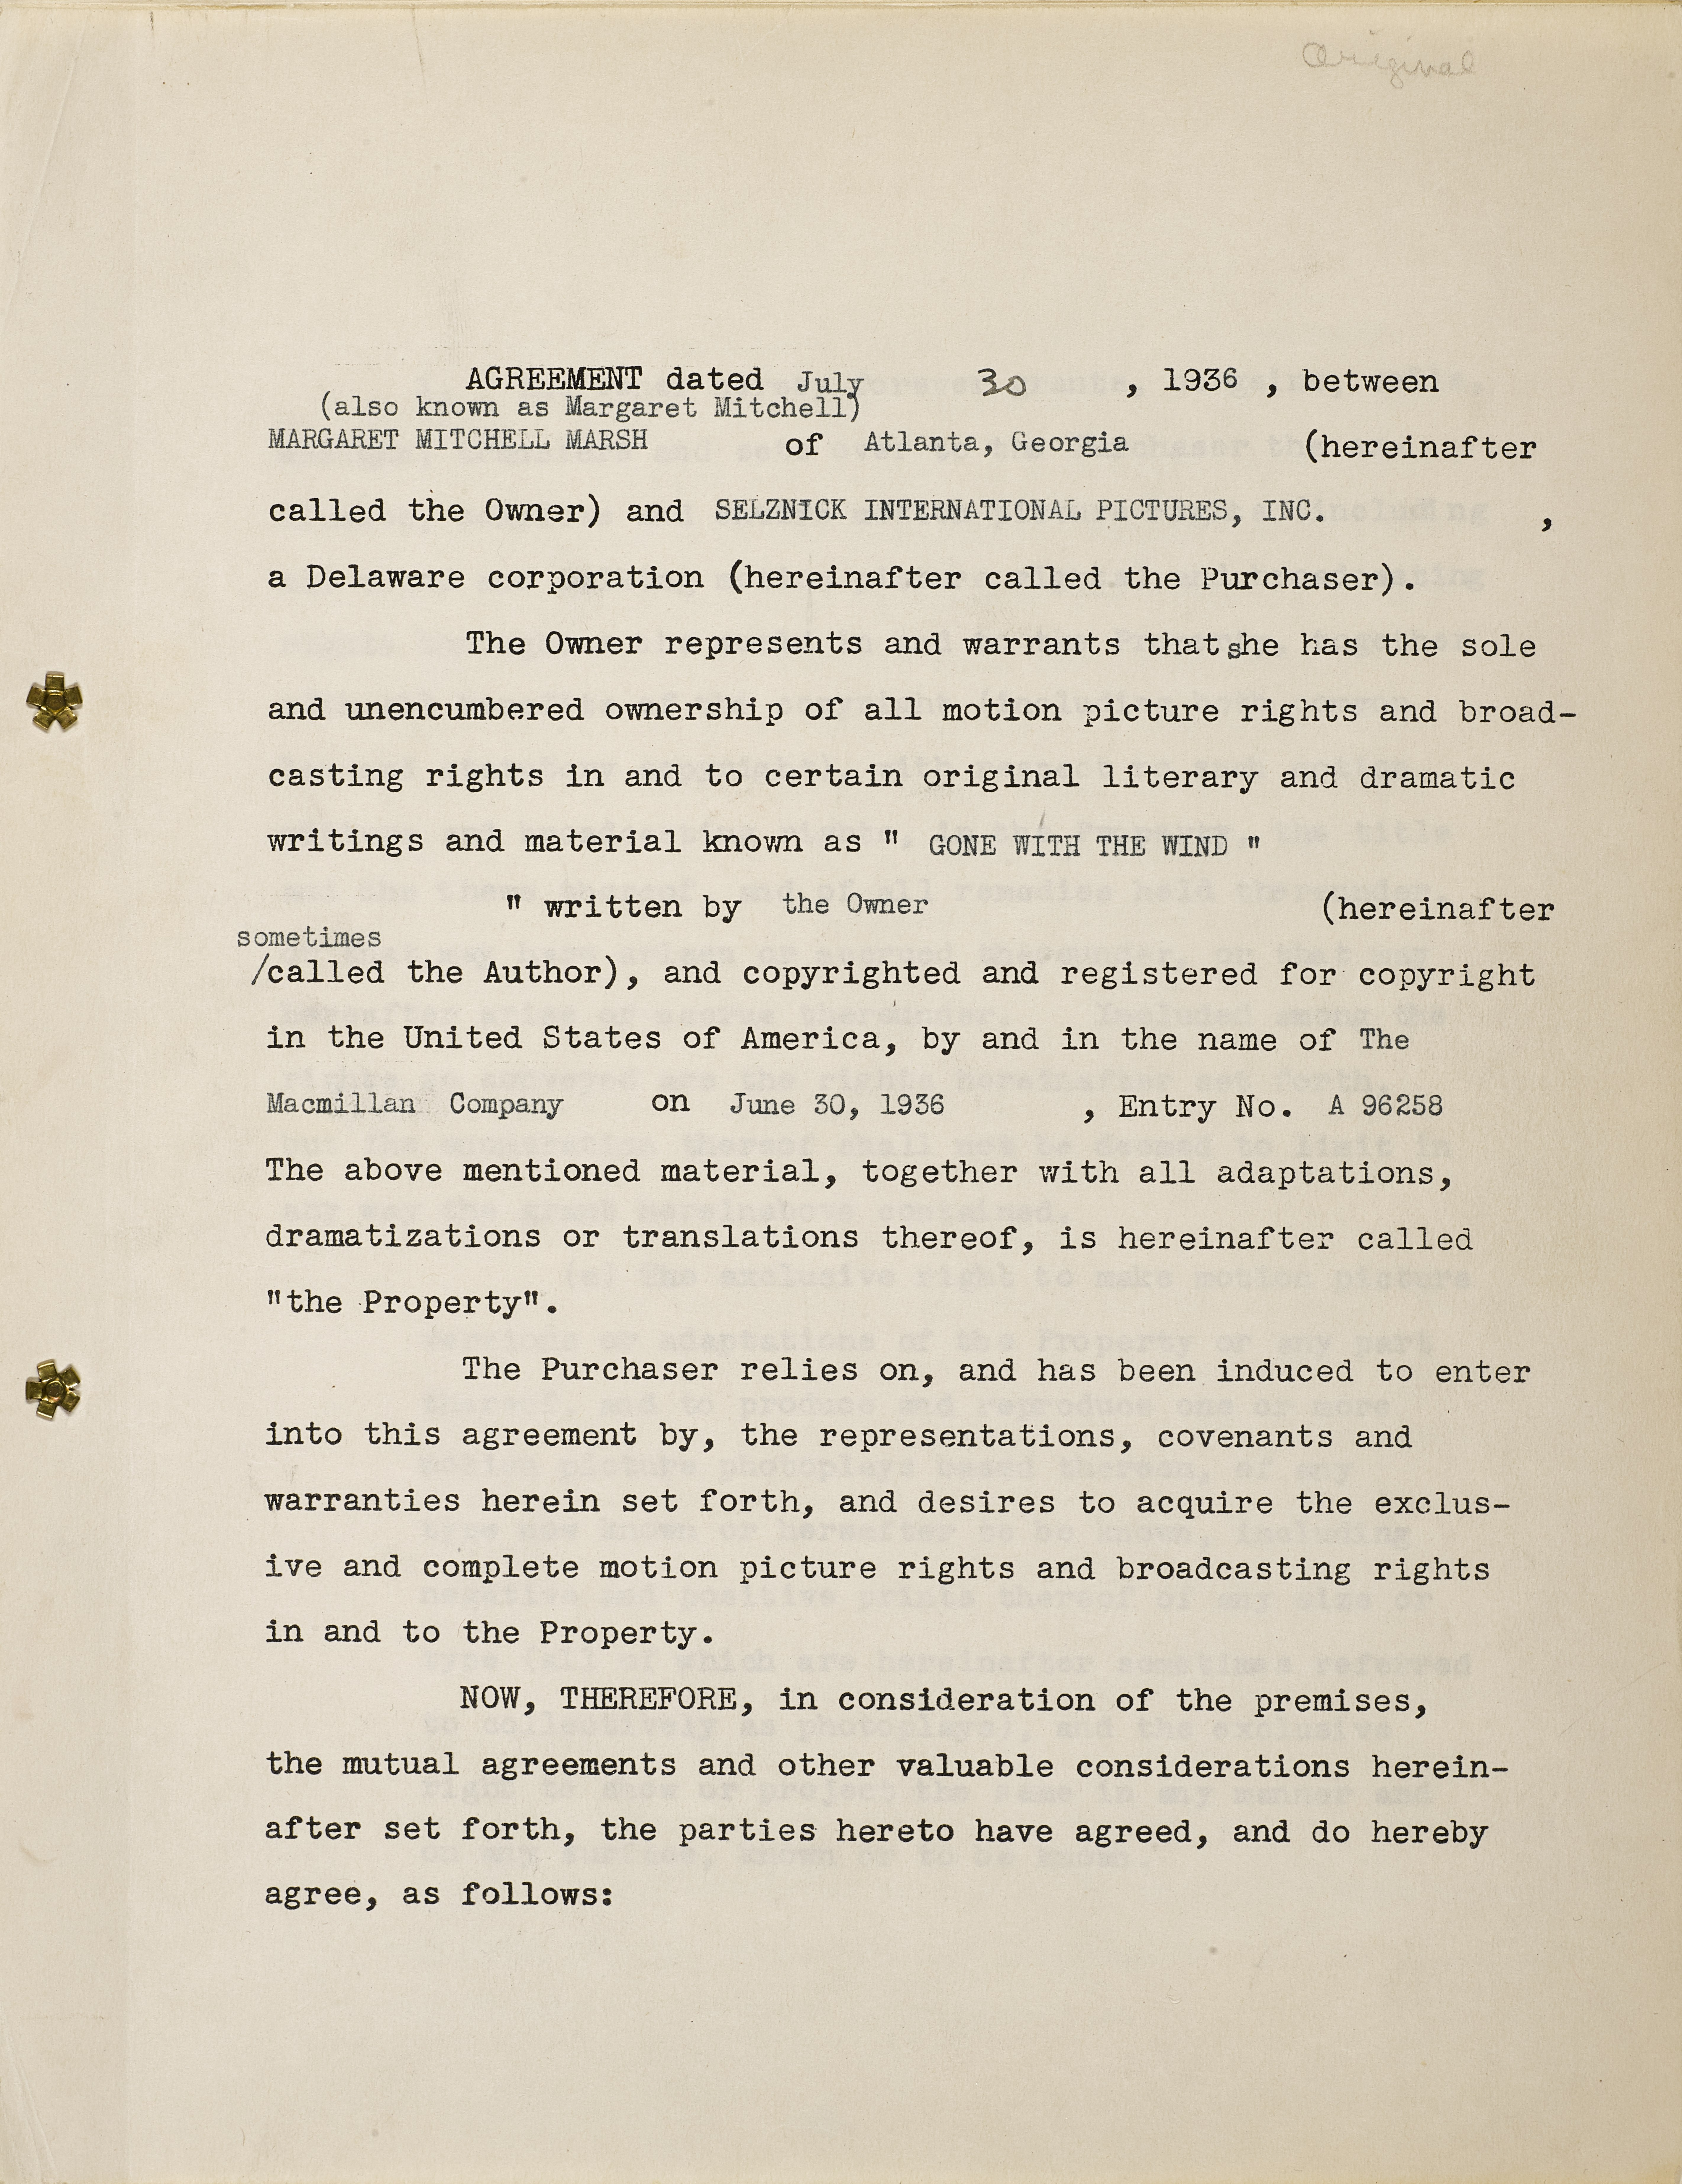 A Margaret Mitchell signed contract selling the film rights of Gone With the Wind to David O. Sel... - Image 2 of 2